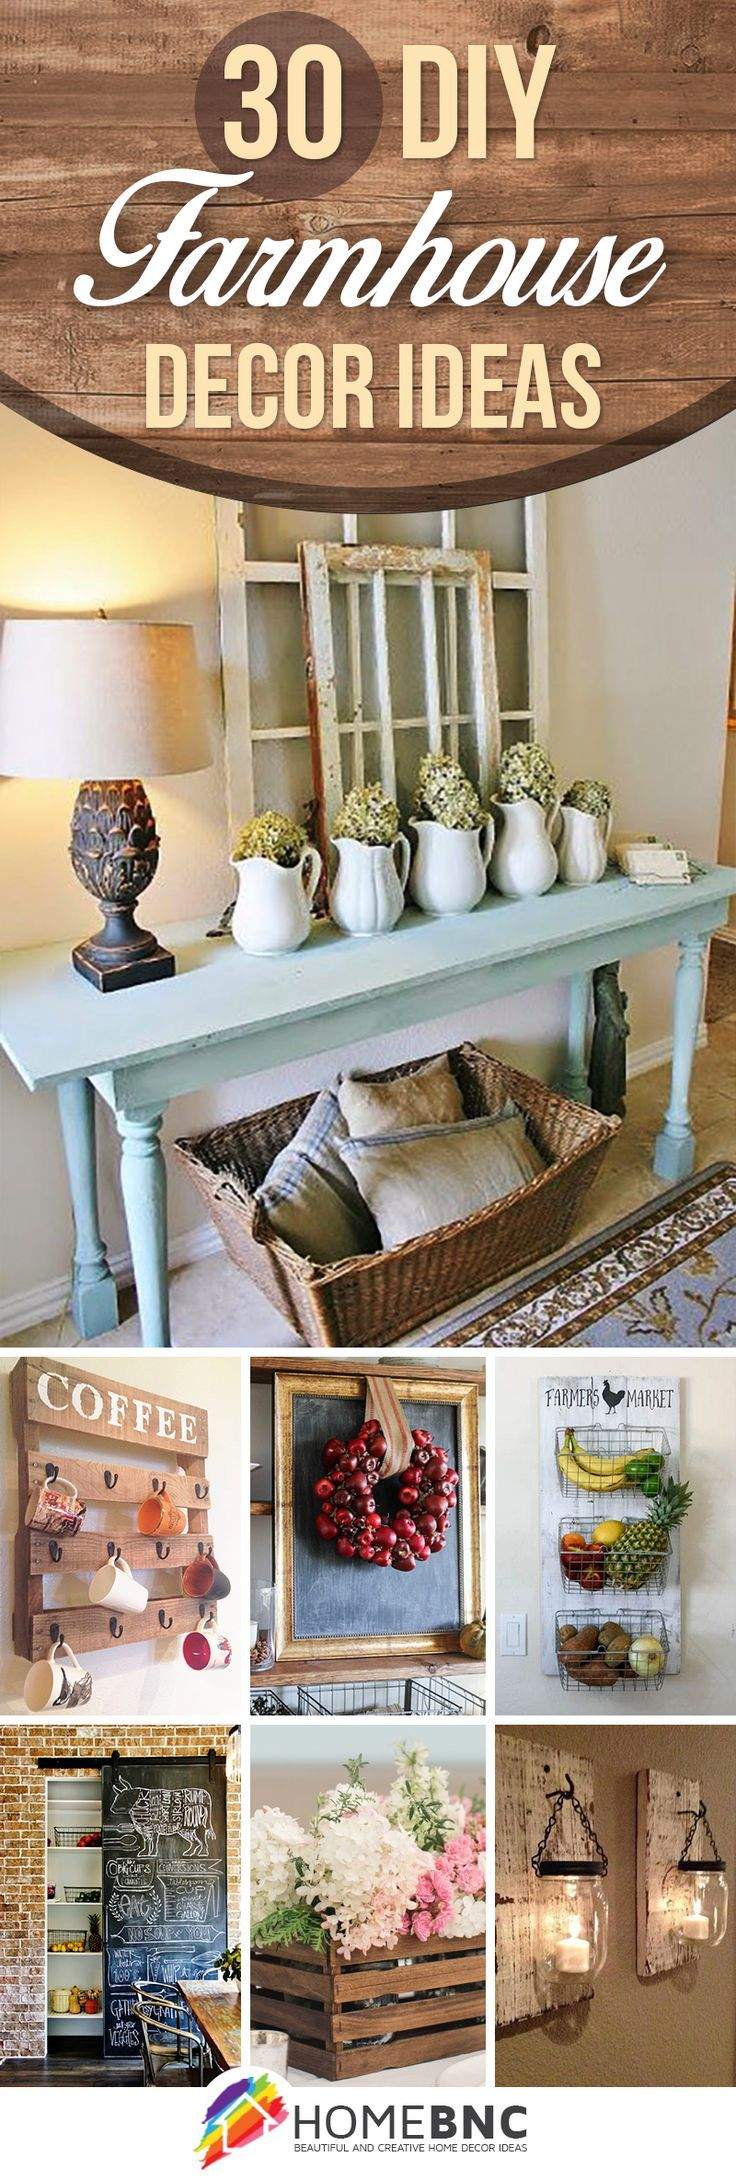 ways diy farmhouse decor ideas can make your home unique things